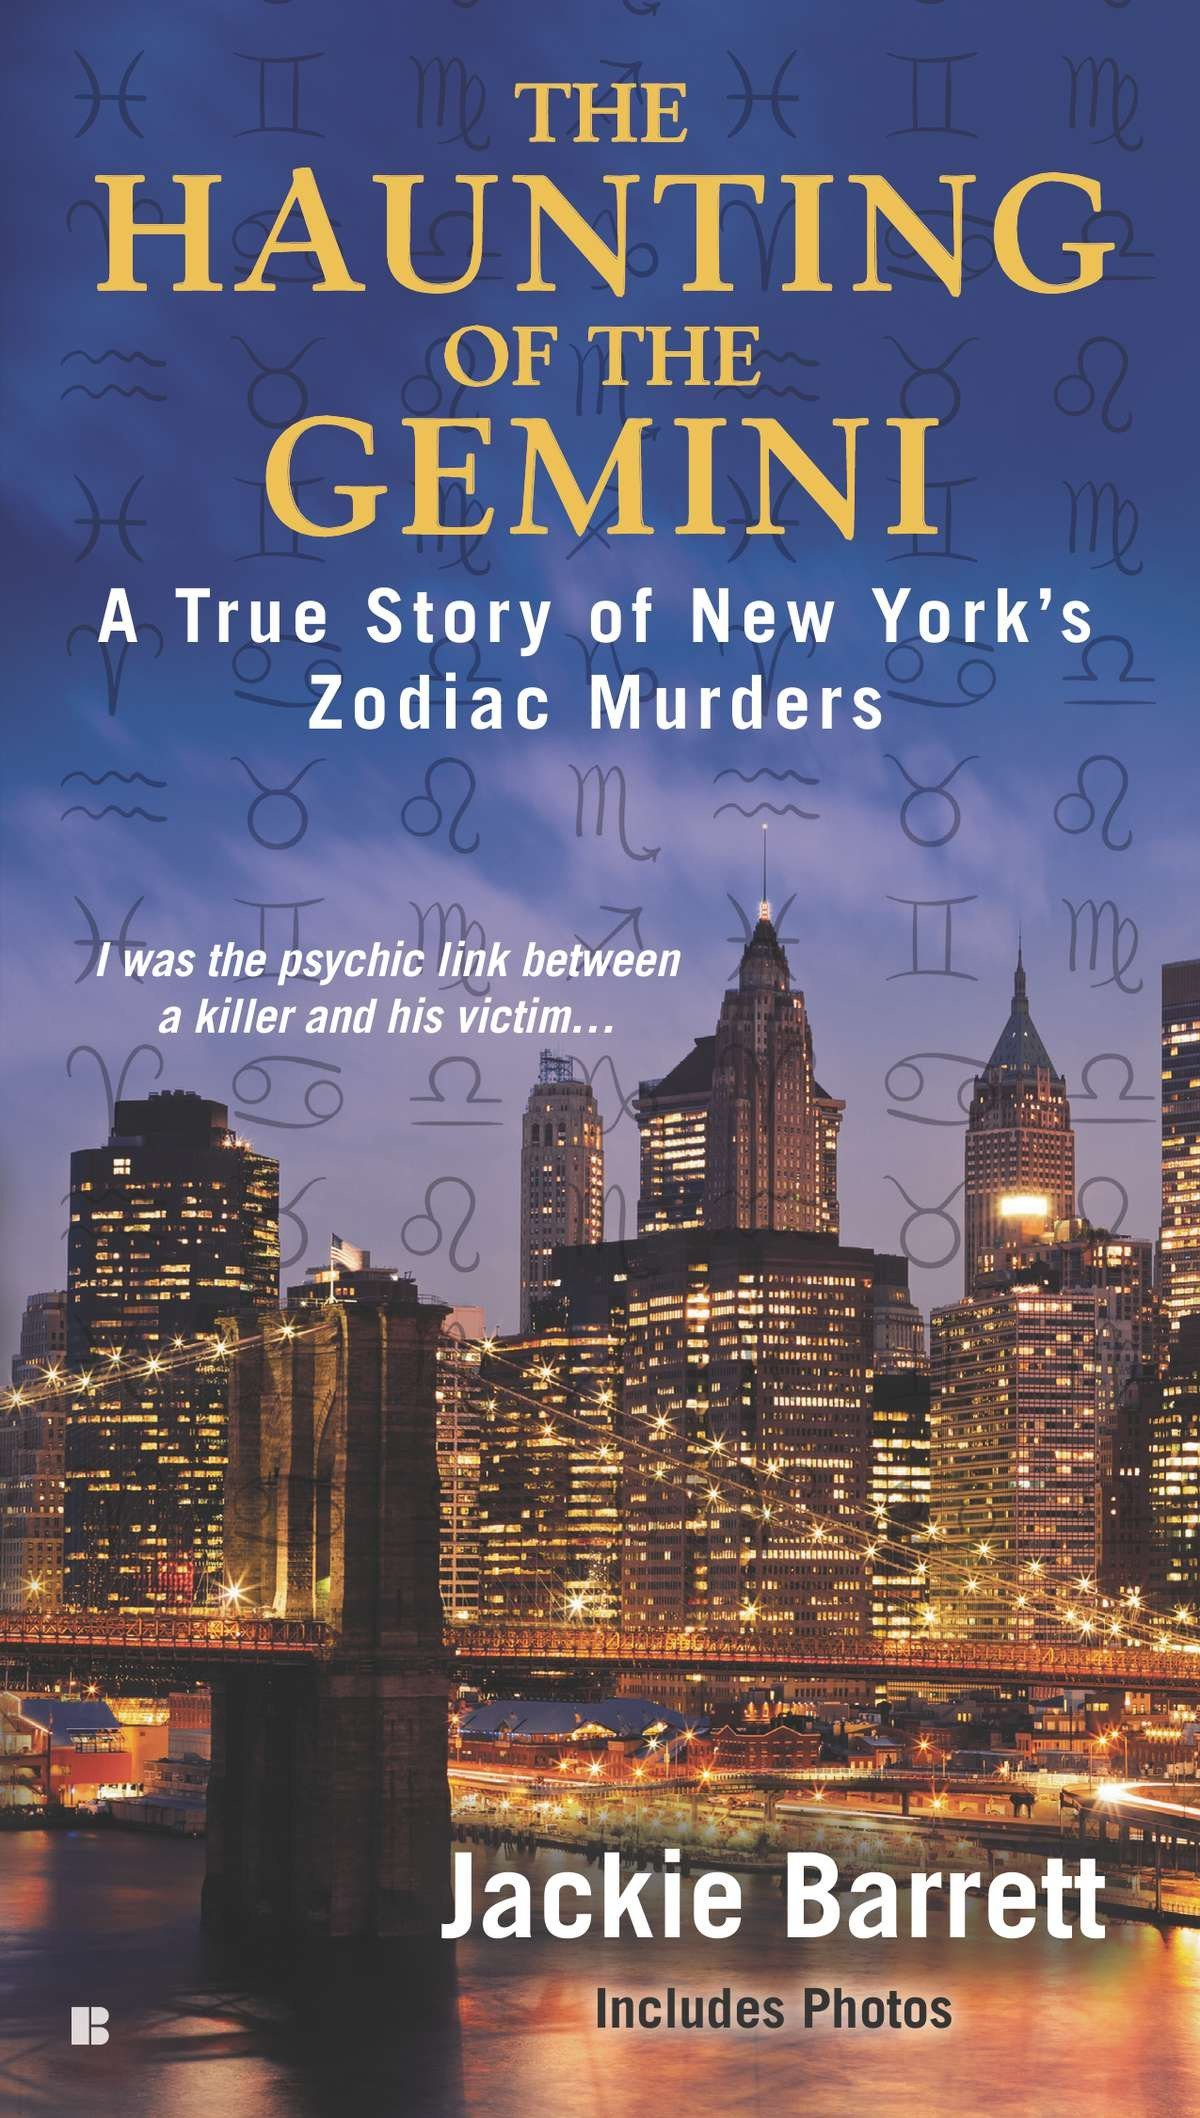 The Haunting of the Gemini: A True Story of New York's Zodiac Murders ebook